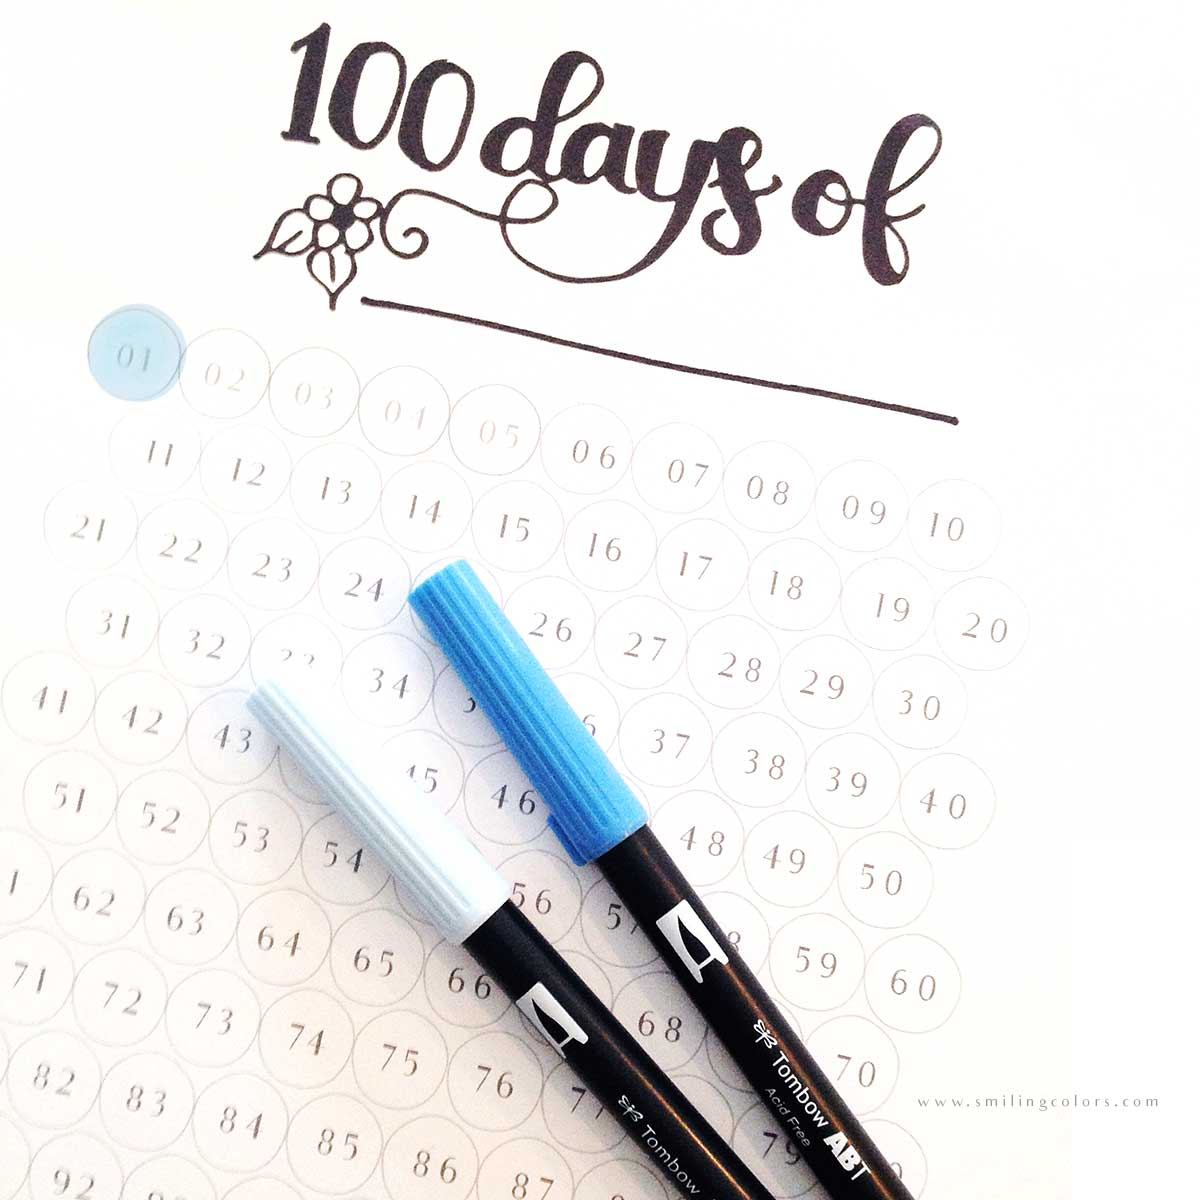 image relating to 100 Day Countdown Printable identified as Free of charge 100 working day reason monitoring printable, precisely down load and shade!